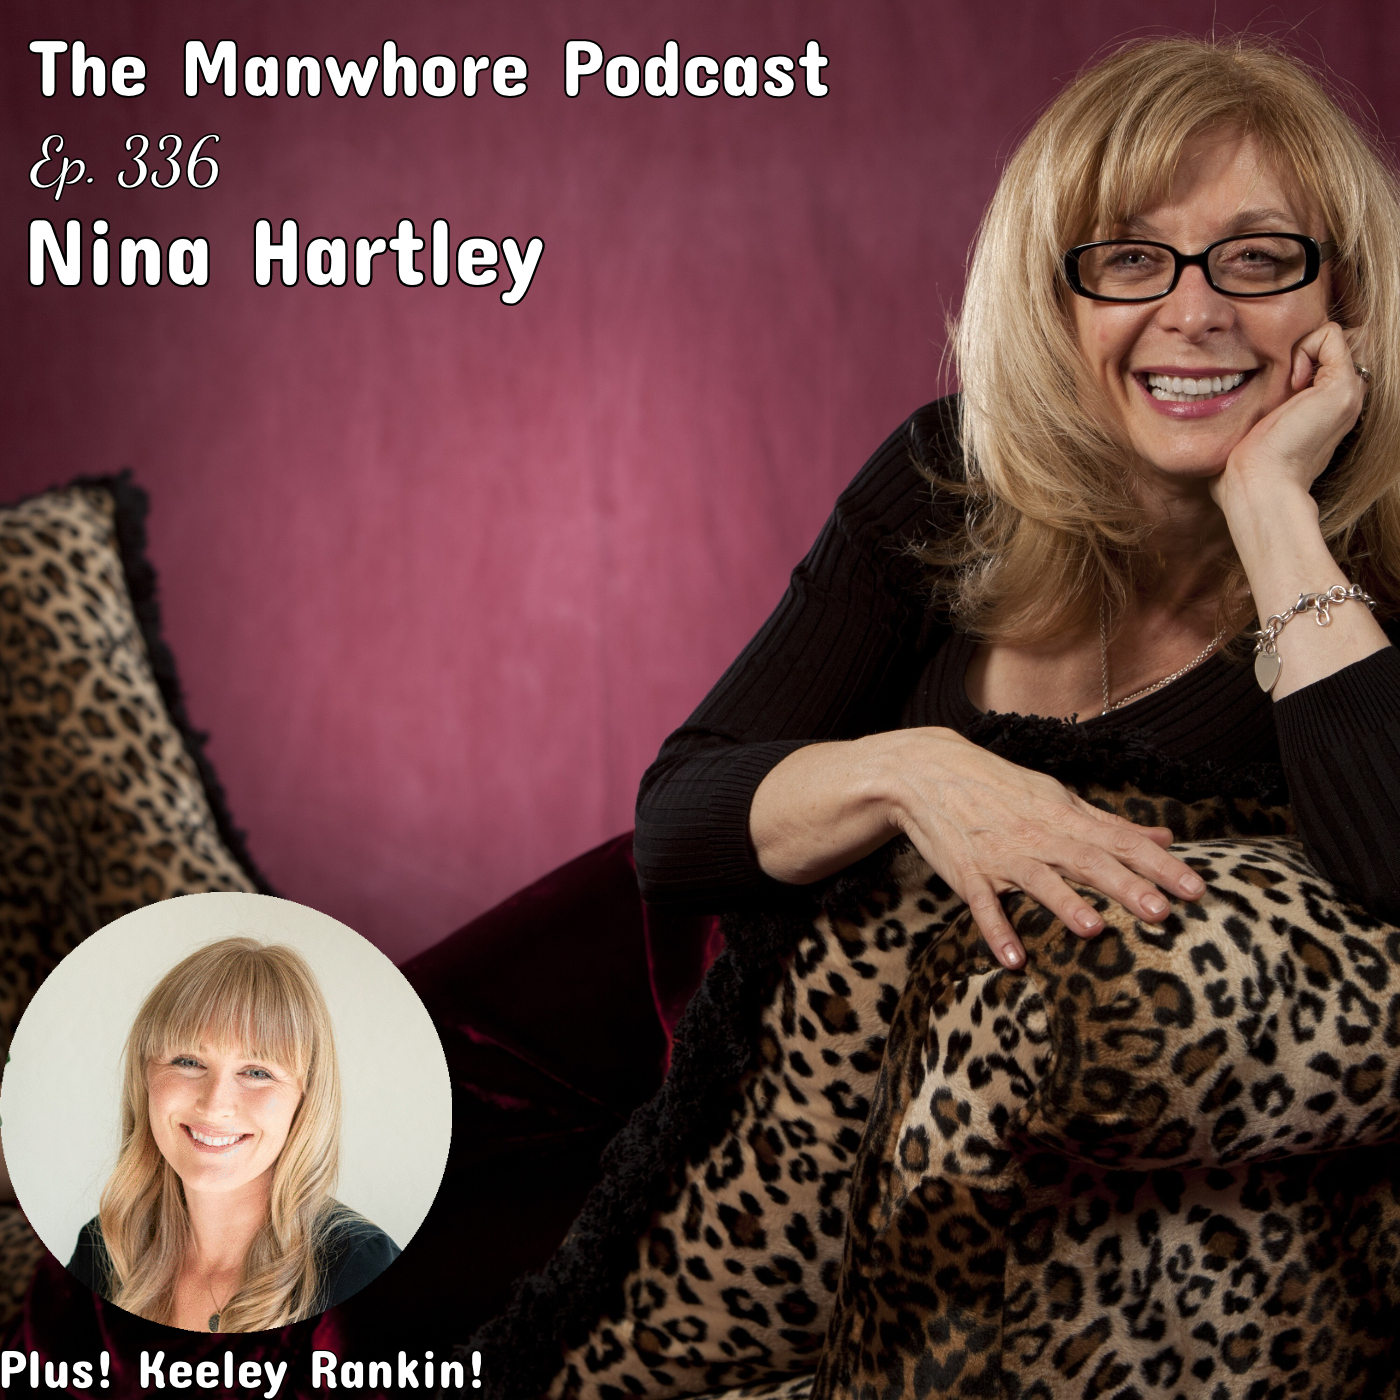 The Manwhore Podcast: A Sex-Positive Quest - Ep. 336: Nina Hartley Discovers the Alpha in Beta Boys